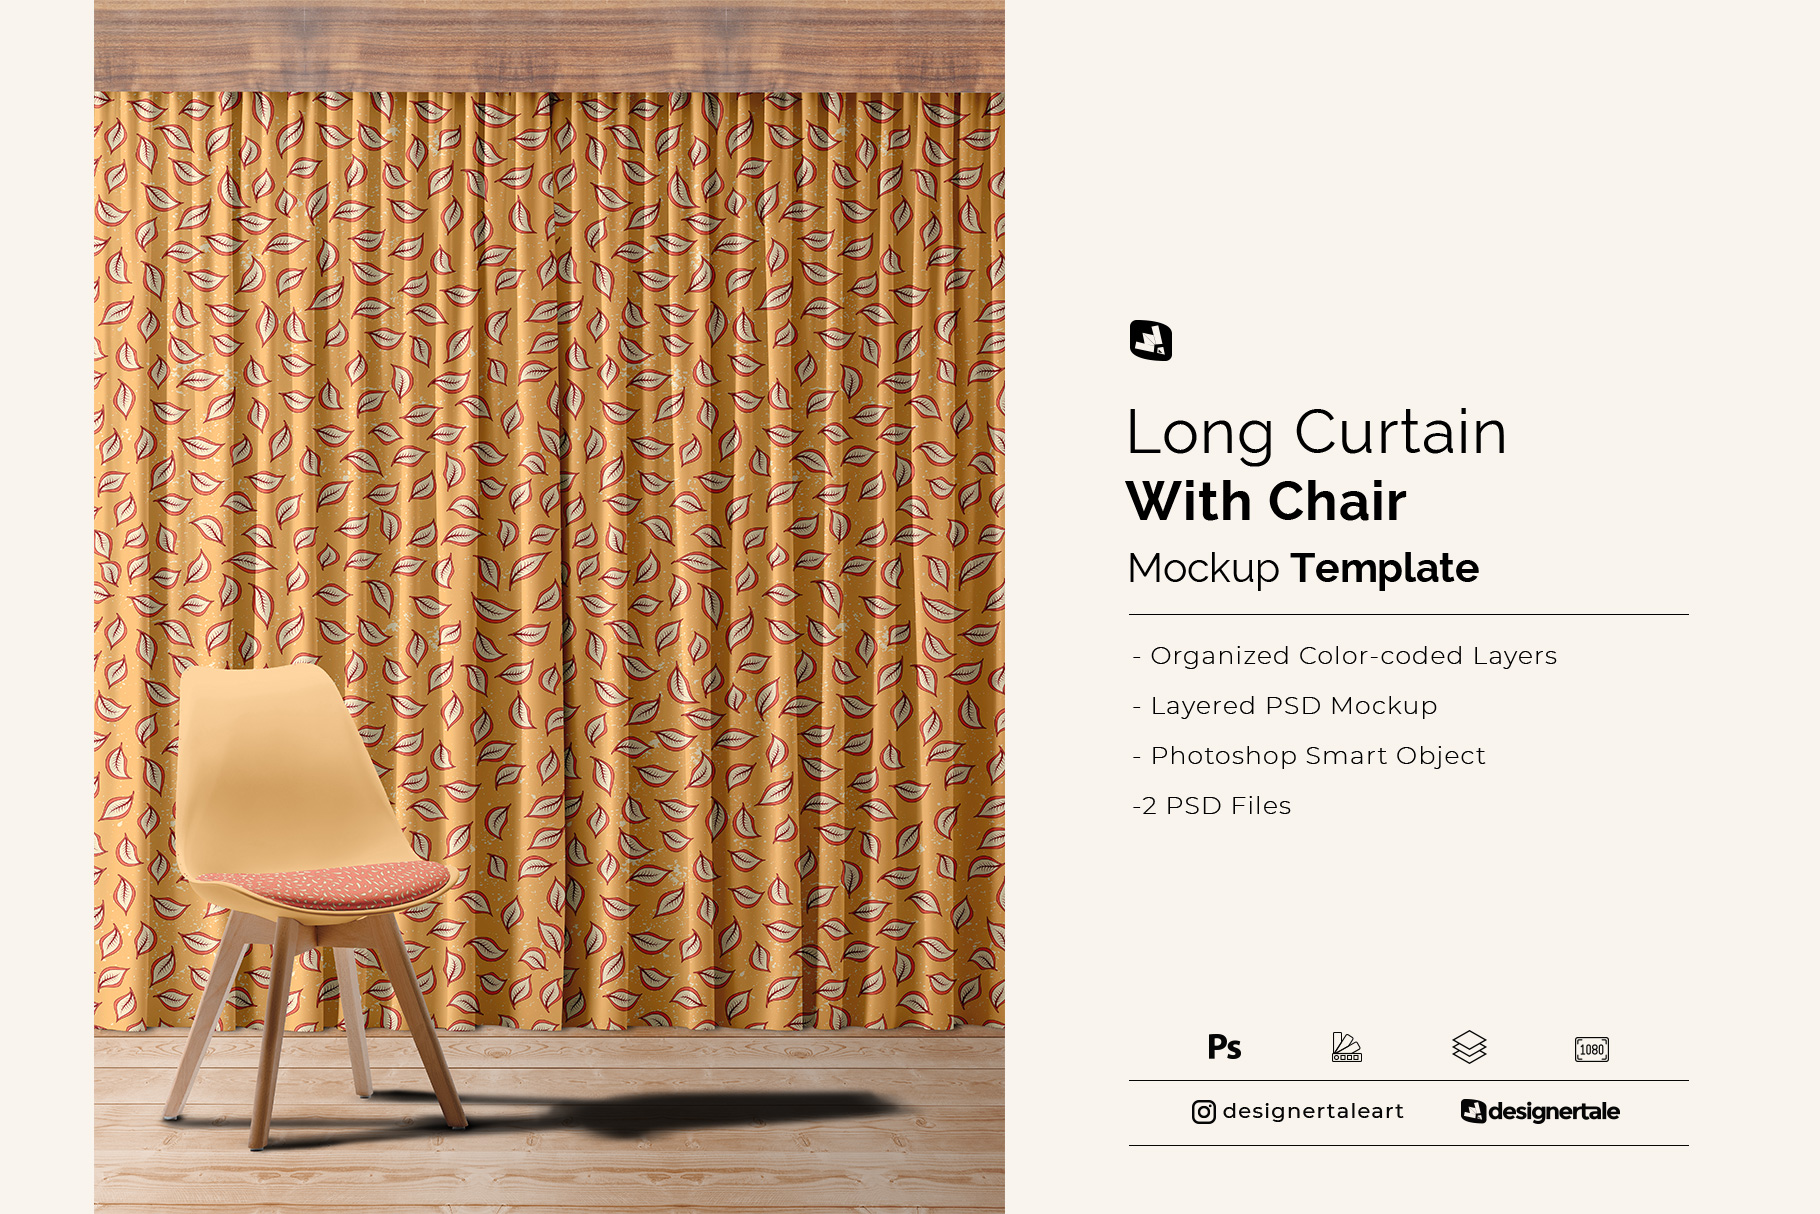 long curtain with chair mockup